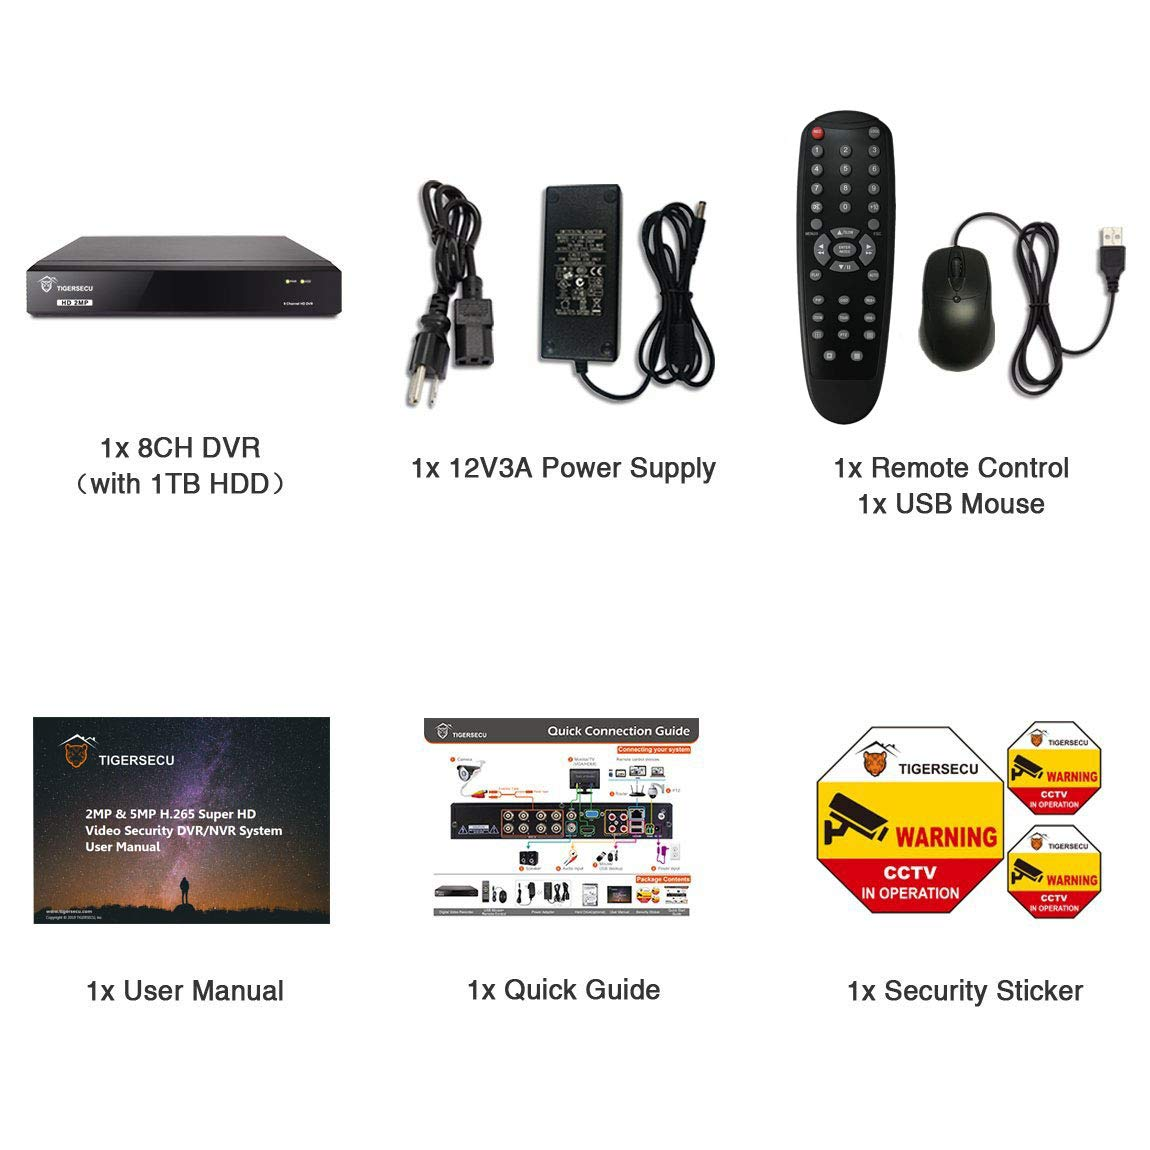 Amazon.com: TIGERSECU Super HD Sistema DVR de seguridad de ...